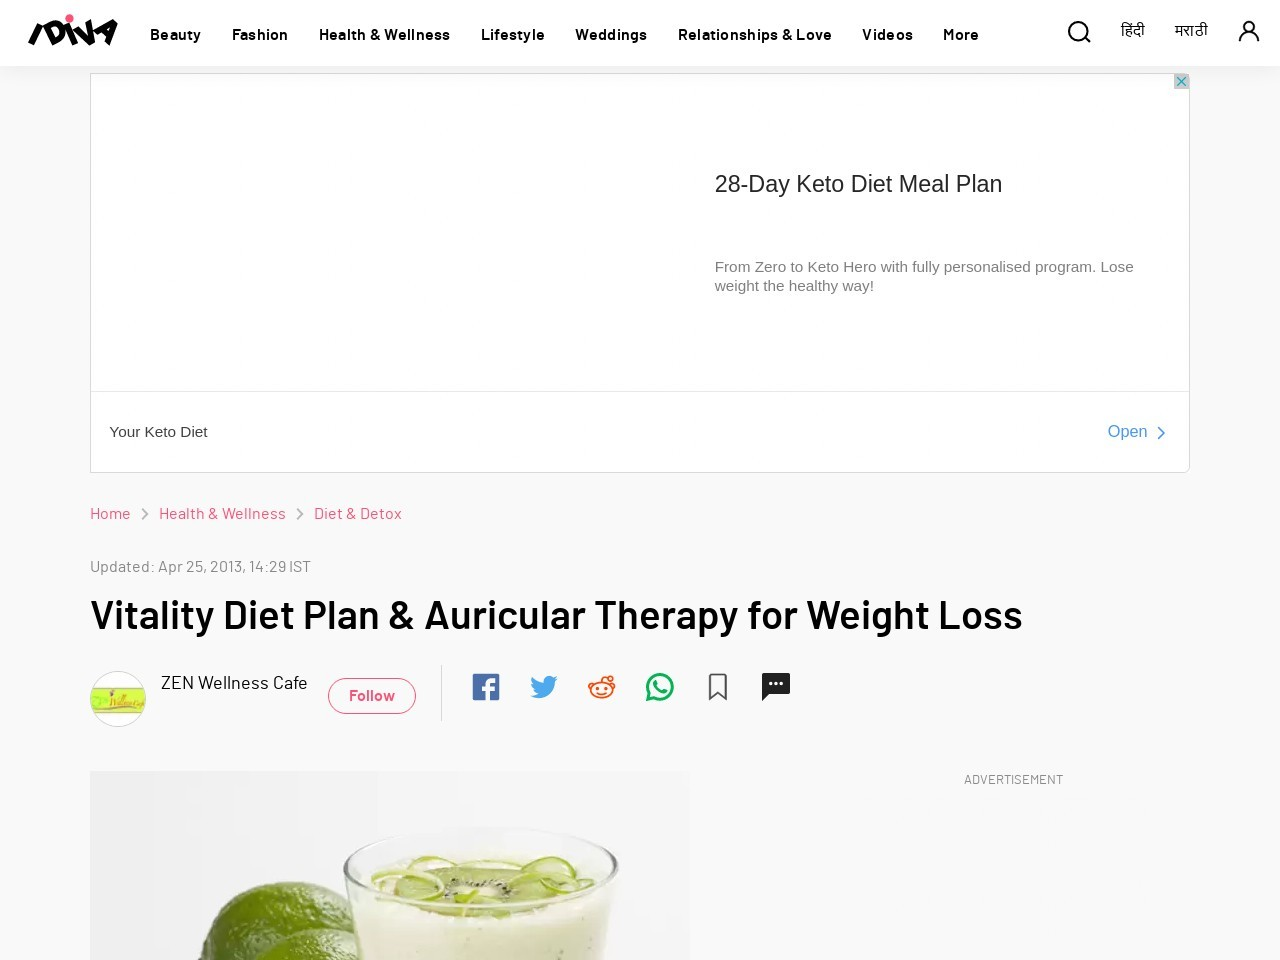 Vitality Diet Plan & Auricular Therapy for Weight Loss …